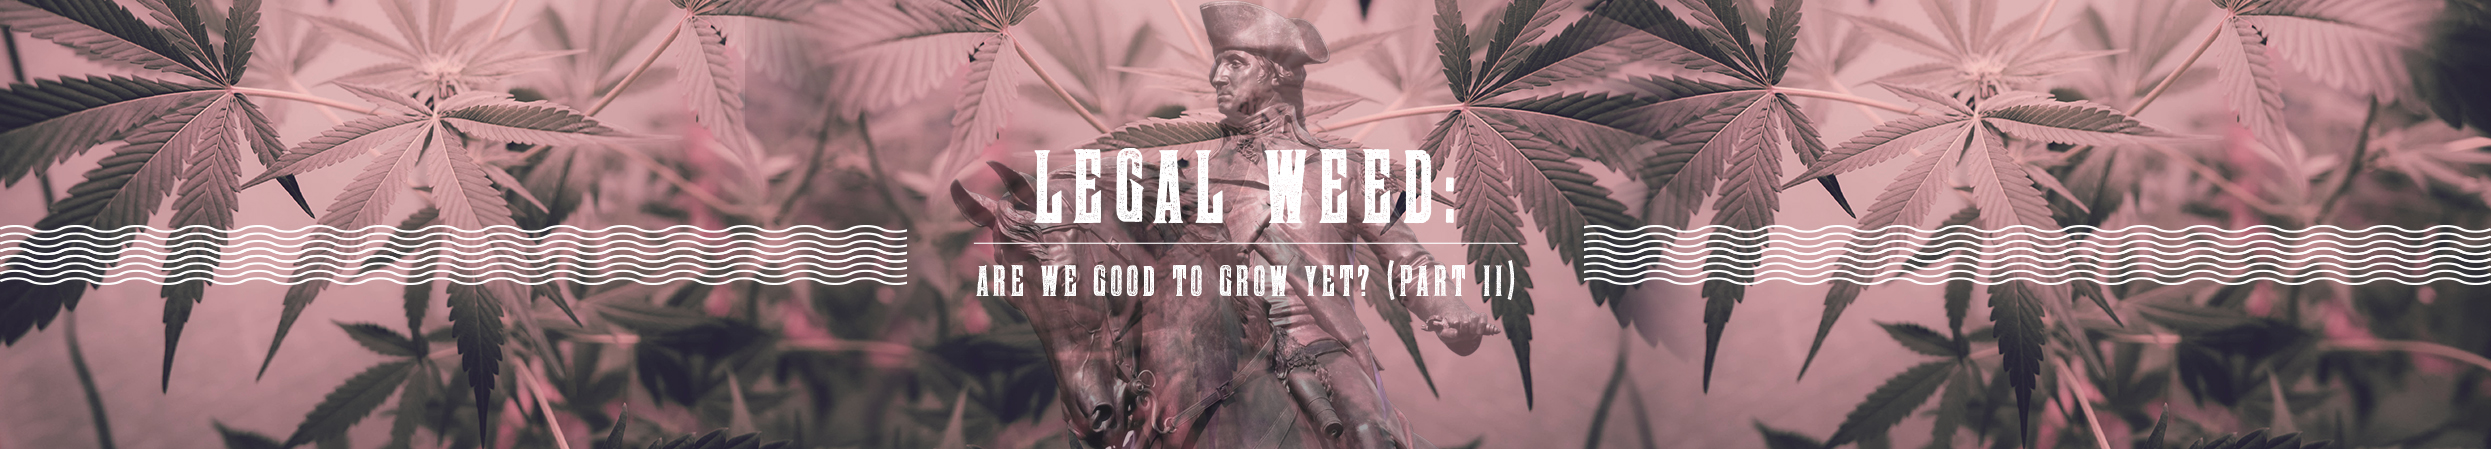 Legal Weed: Are We Good To Grow Yet? (Part II)